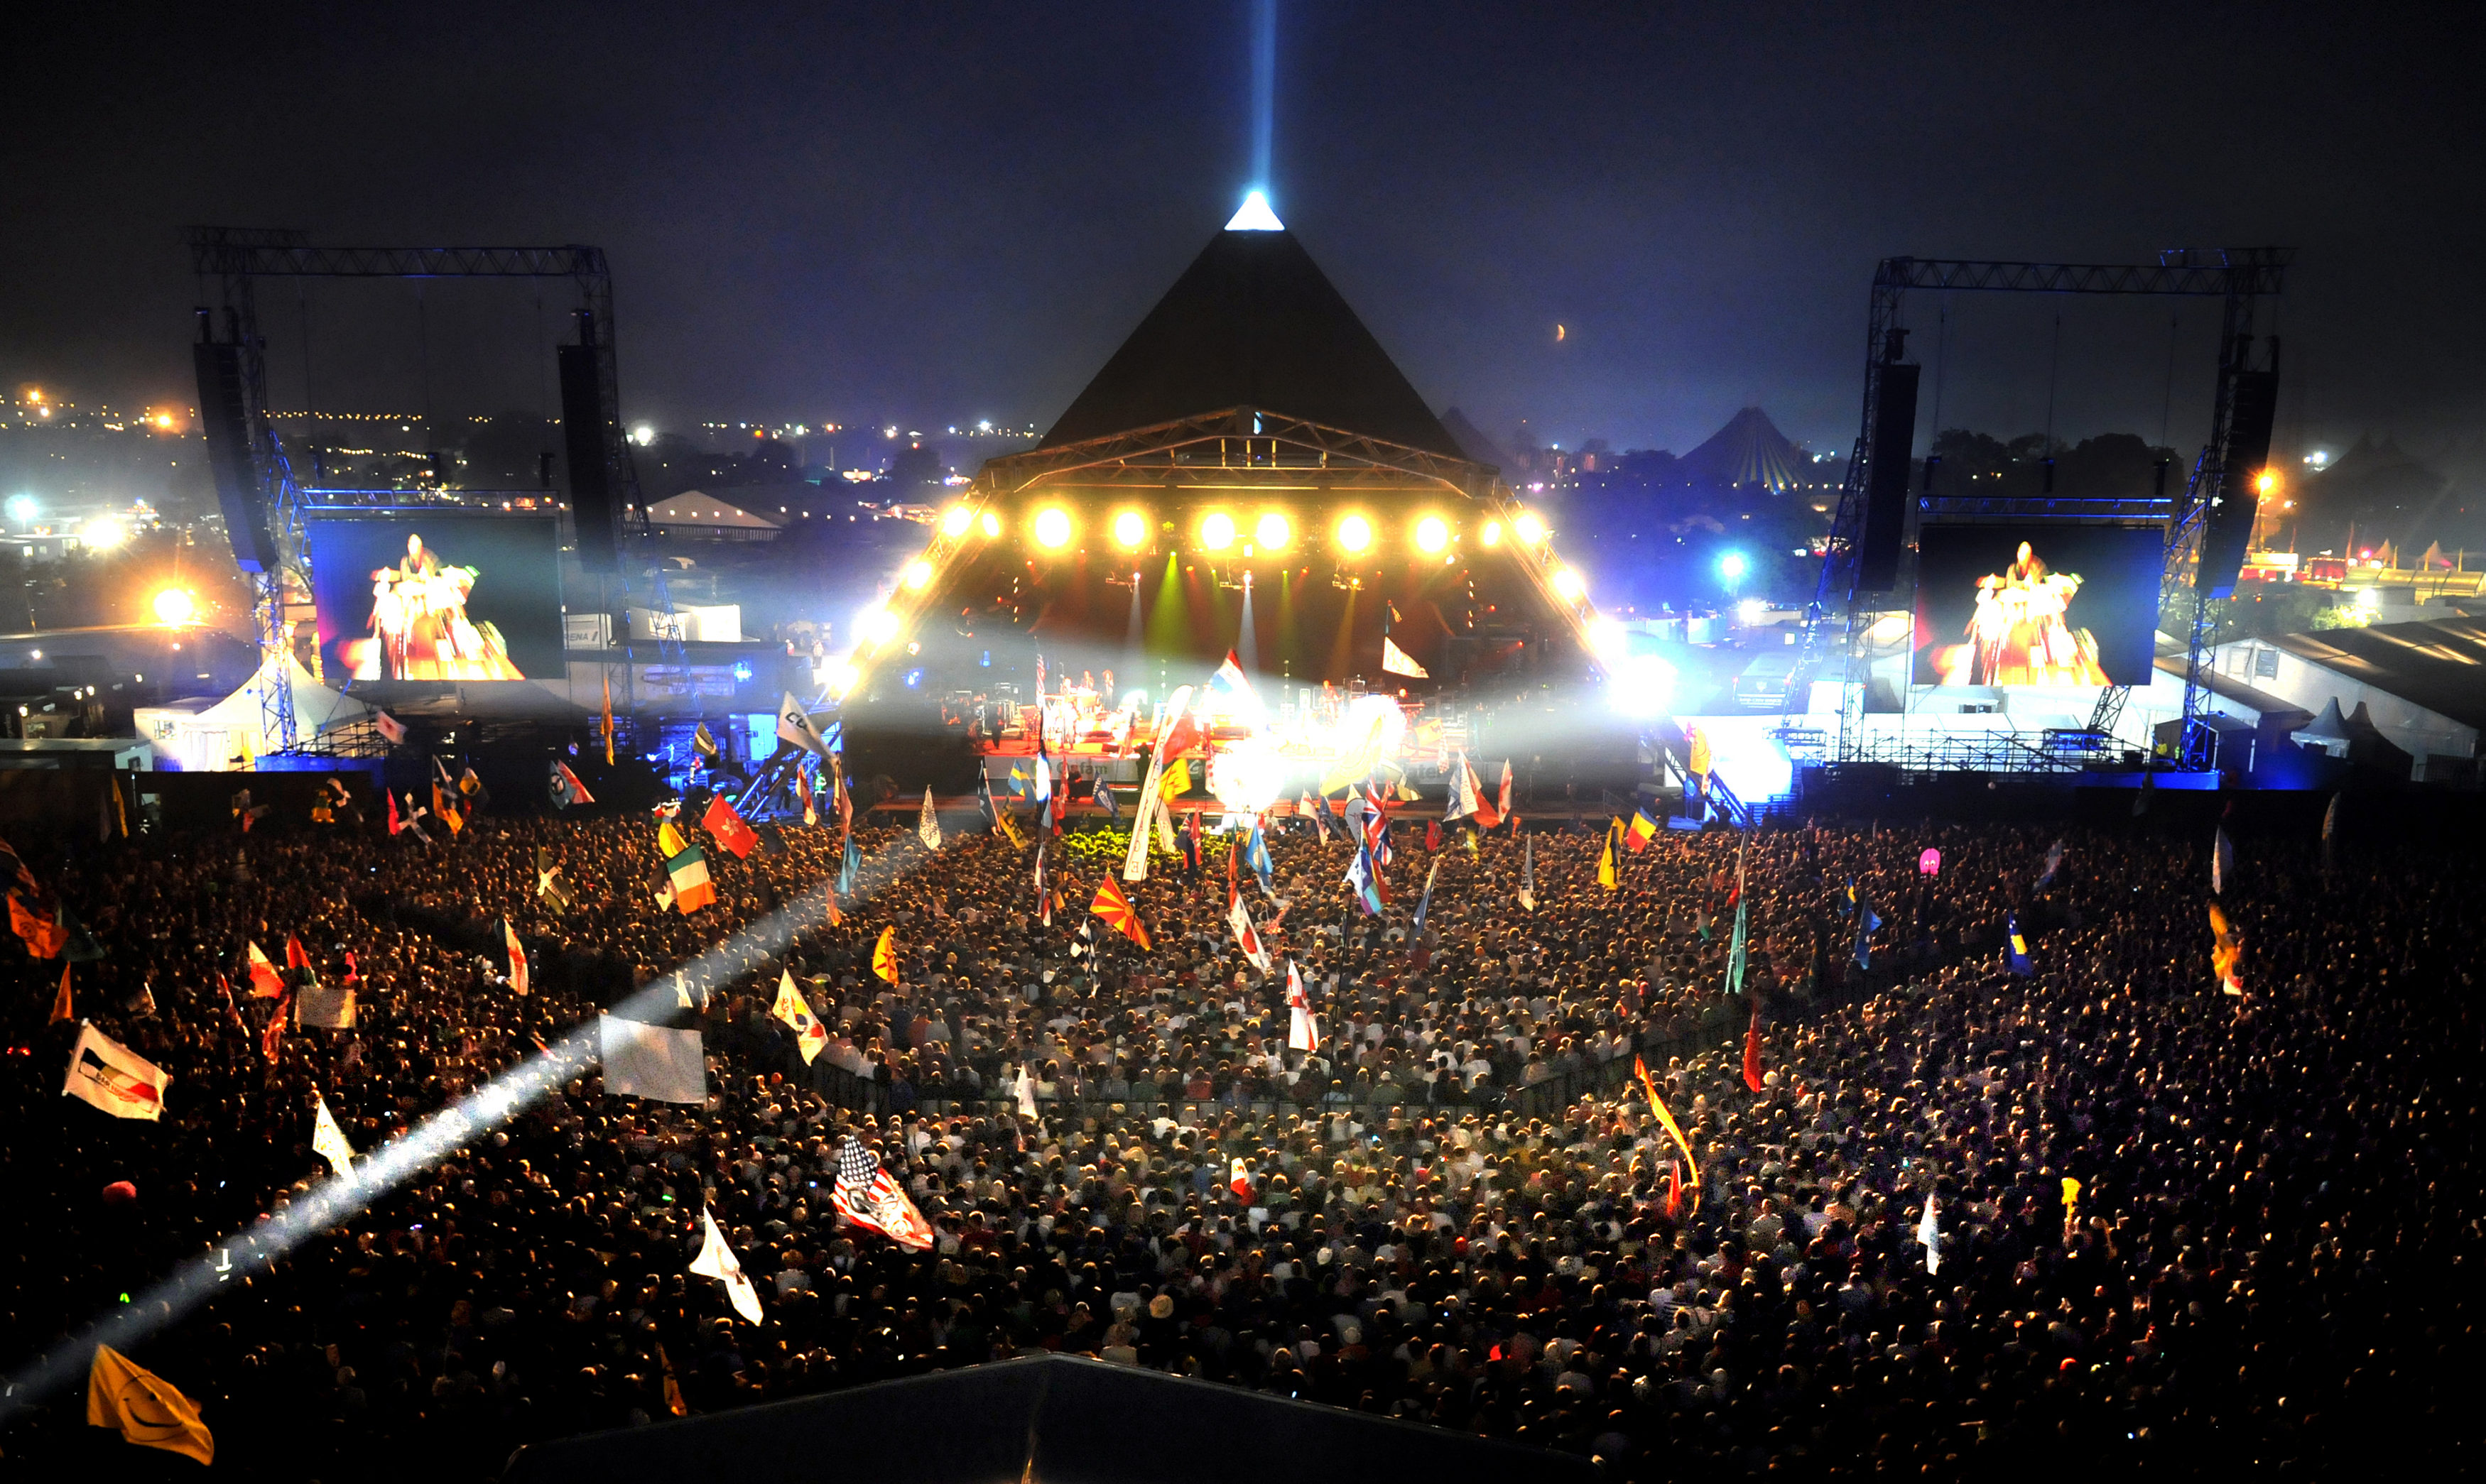 View on the Pyramid Stage for Bruce Springsteen, Glastonbury 2009. Photographer: Sarah Jeynes. © BBC.